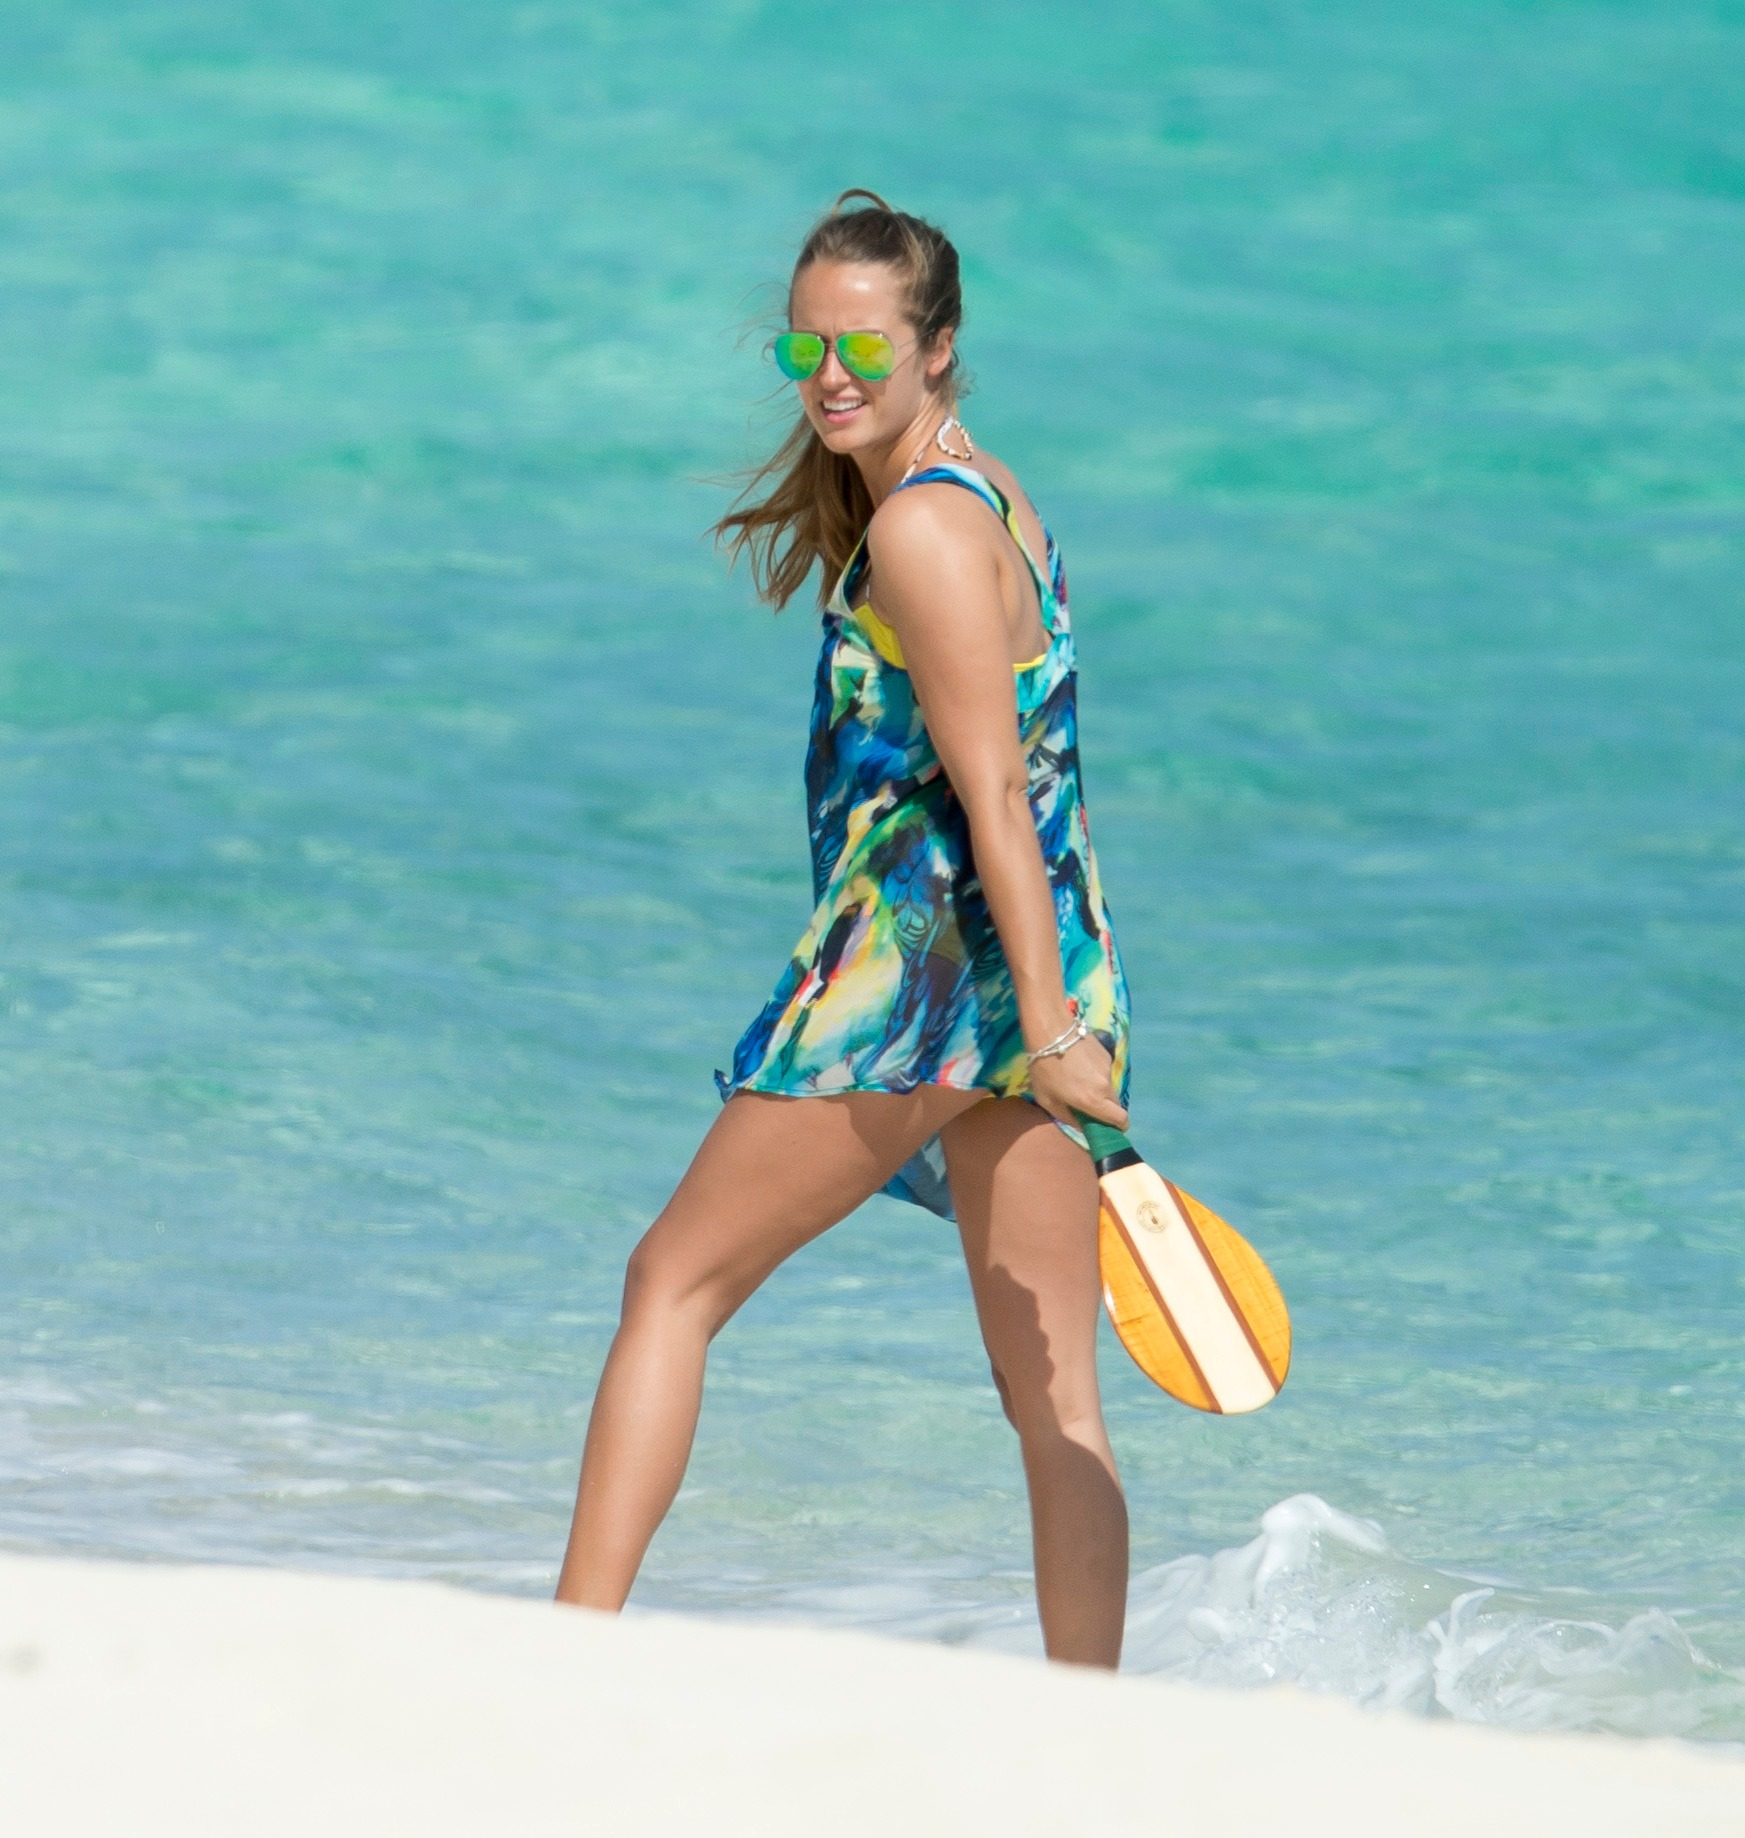 Kim Sears donning tropical printed Ted Baker dress over yellow bikini at a beach in Bahamas in 2013